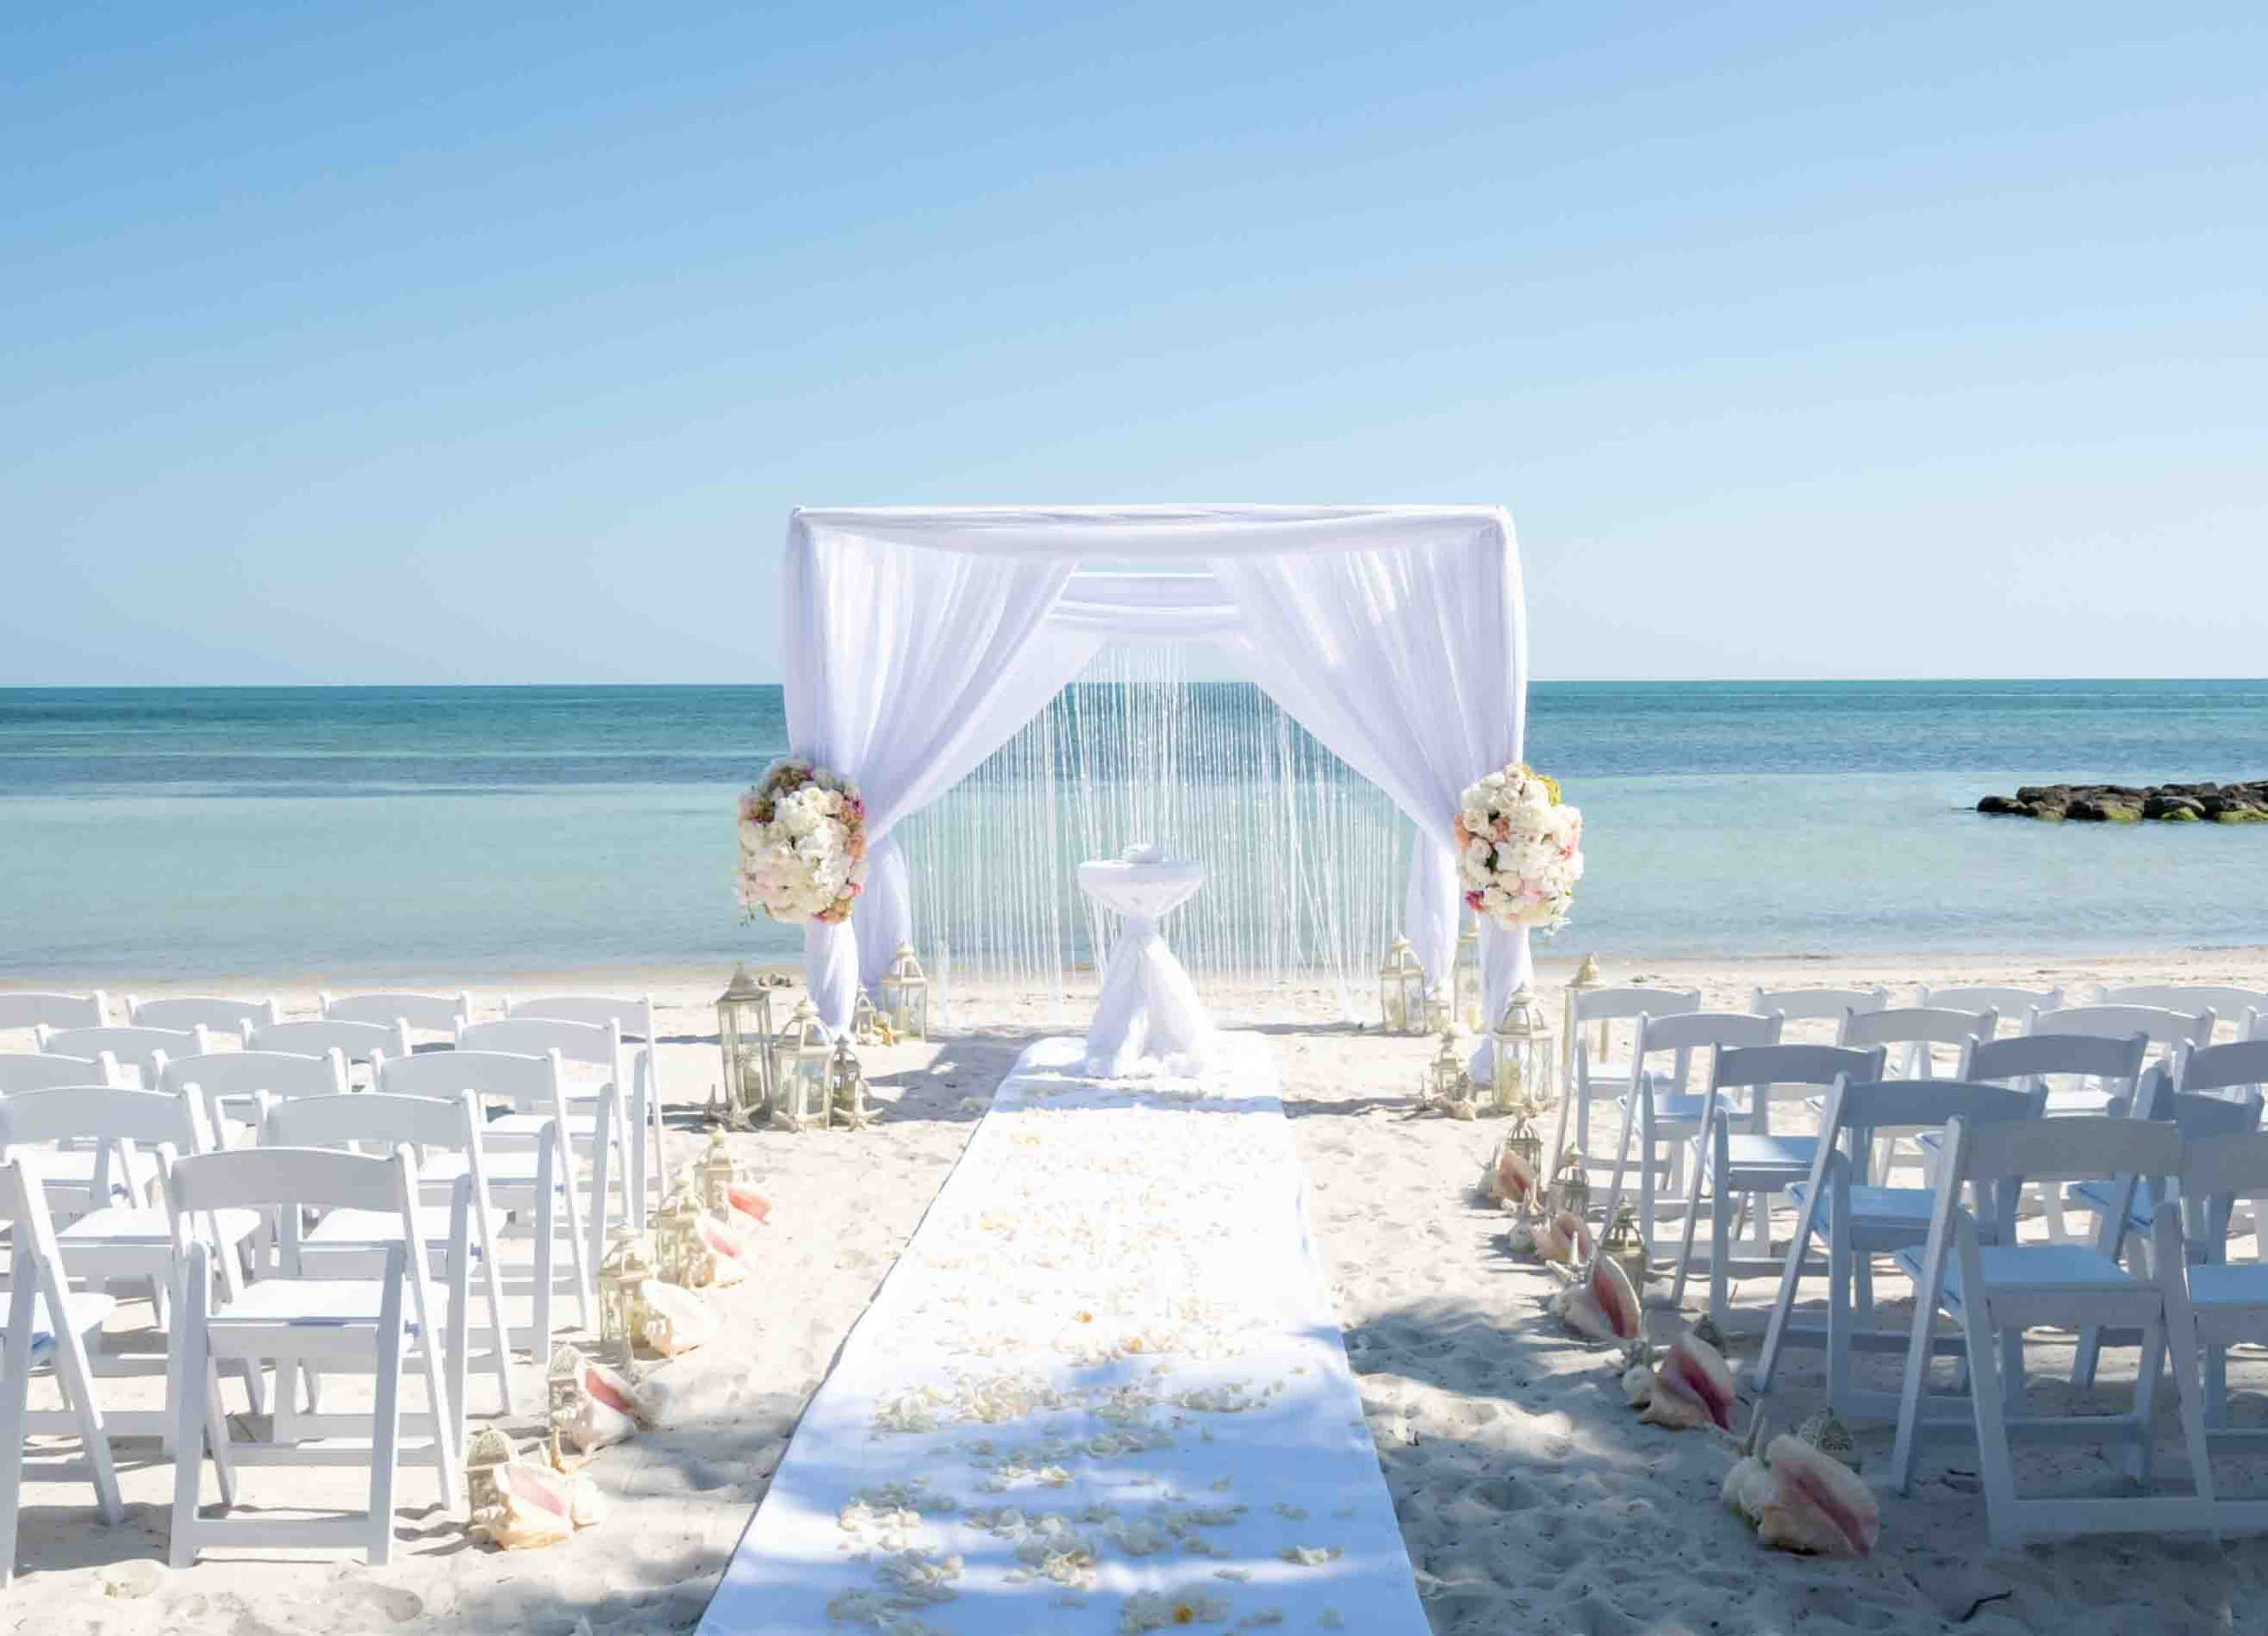 All Inclusive Wedding Packages Cruise Ship di 2020